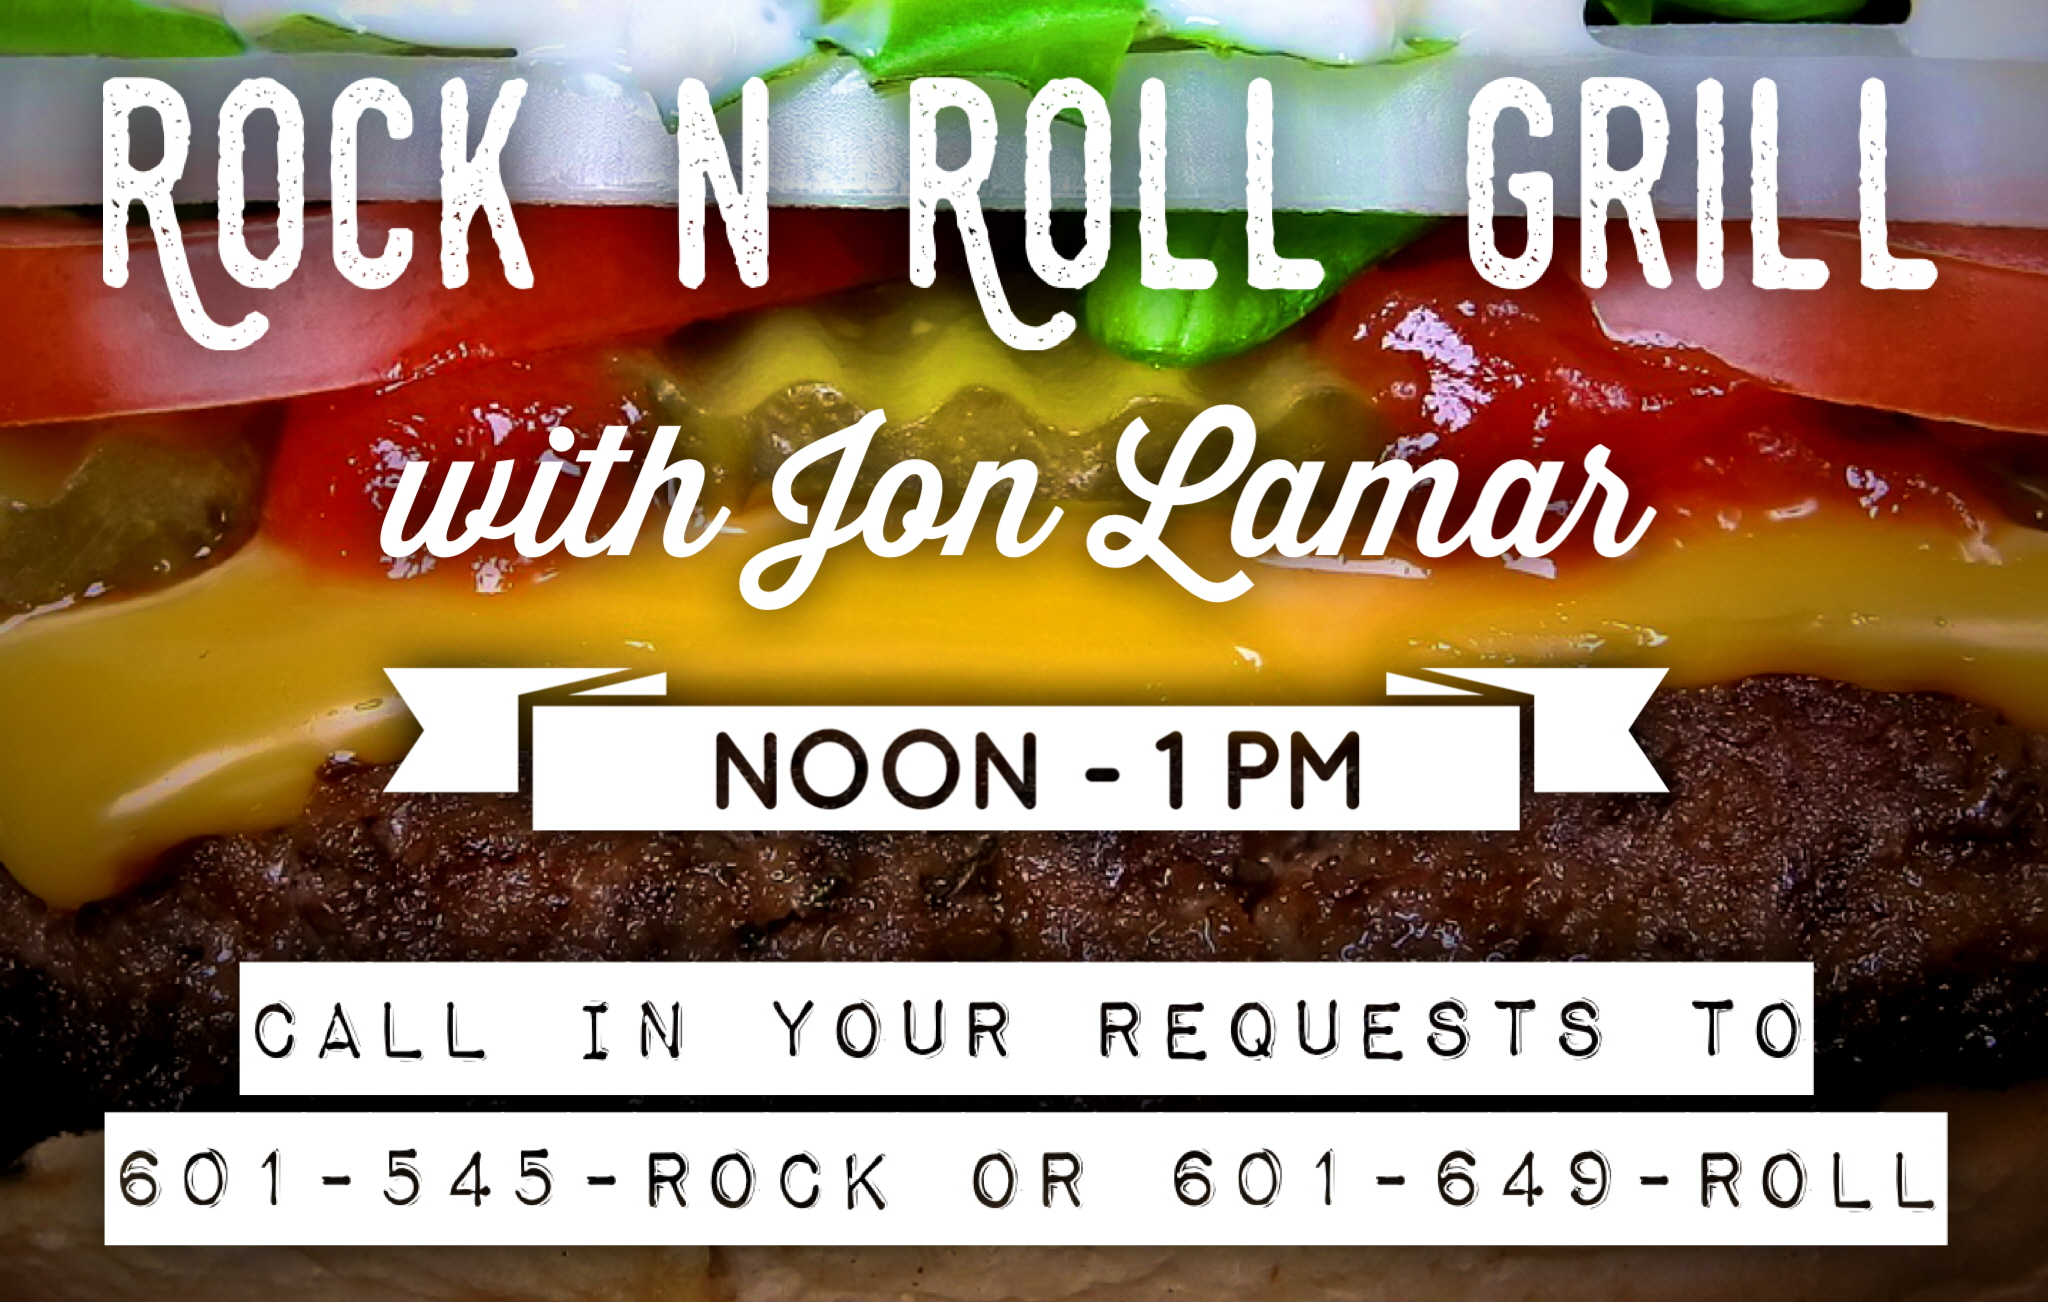 Request a song during the Rock n Roll Grill with Jon Lamar